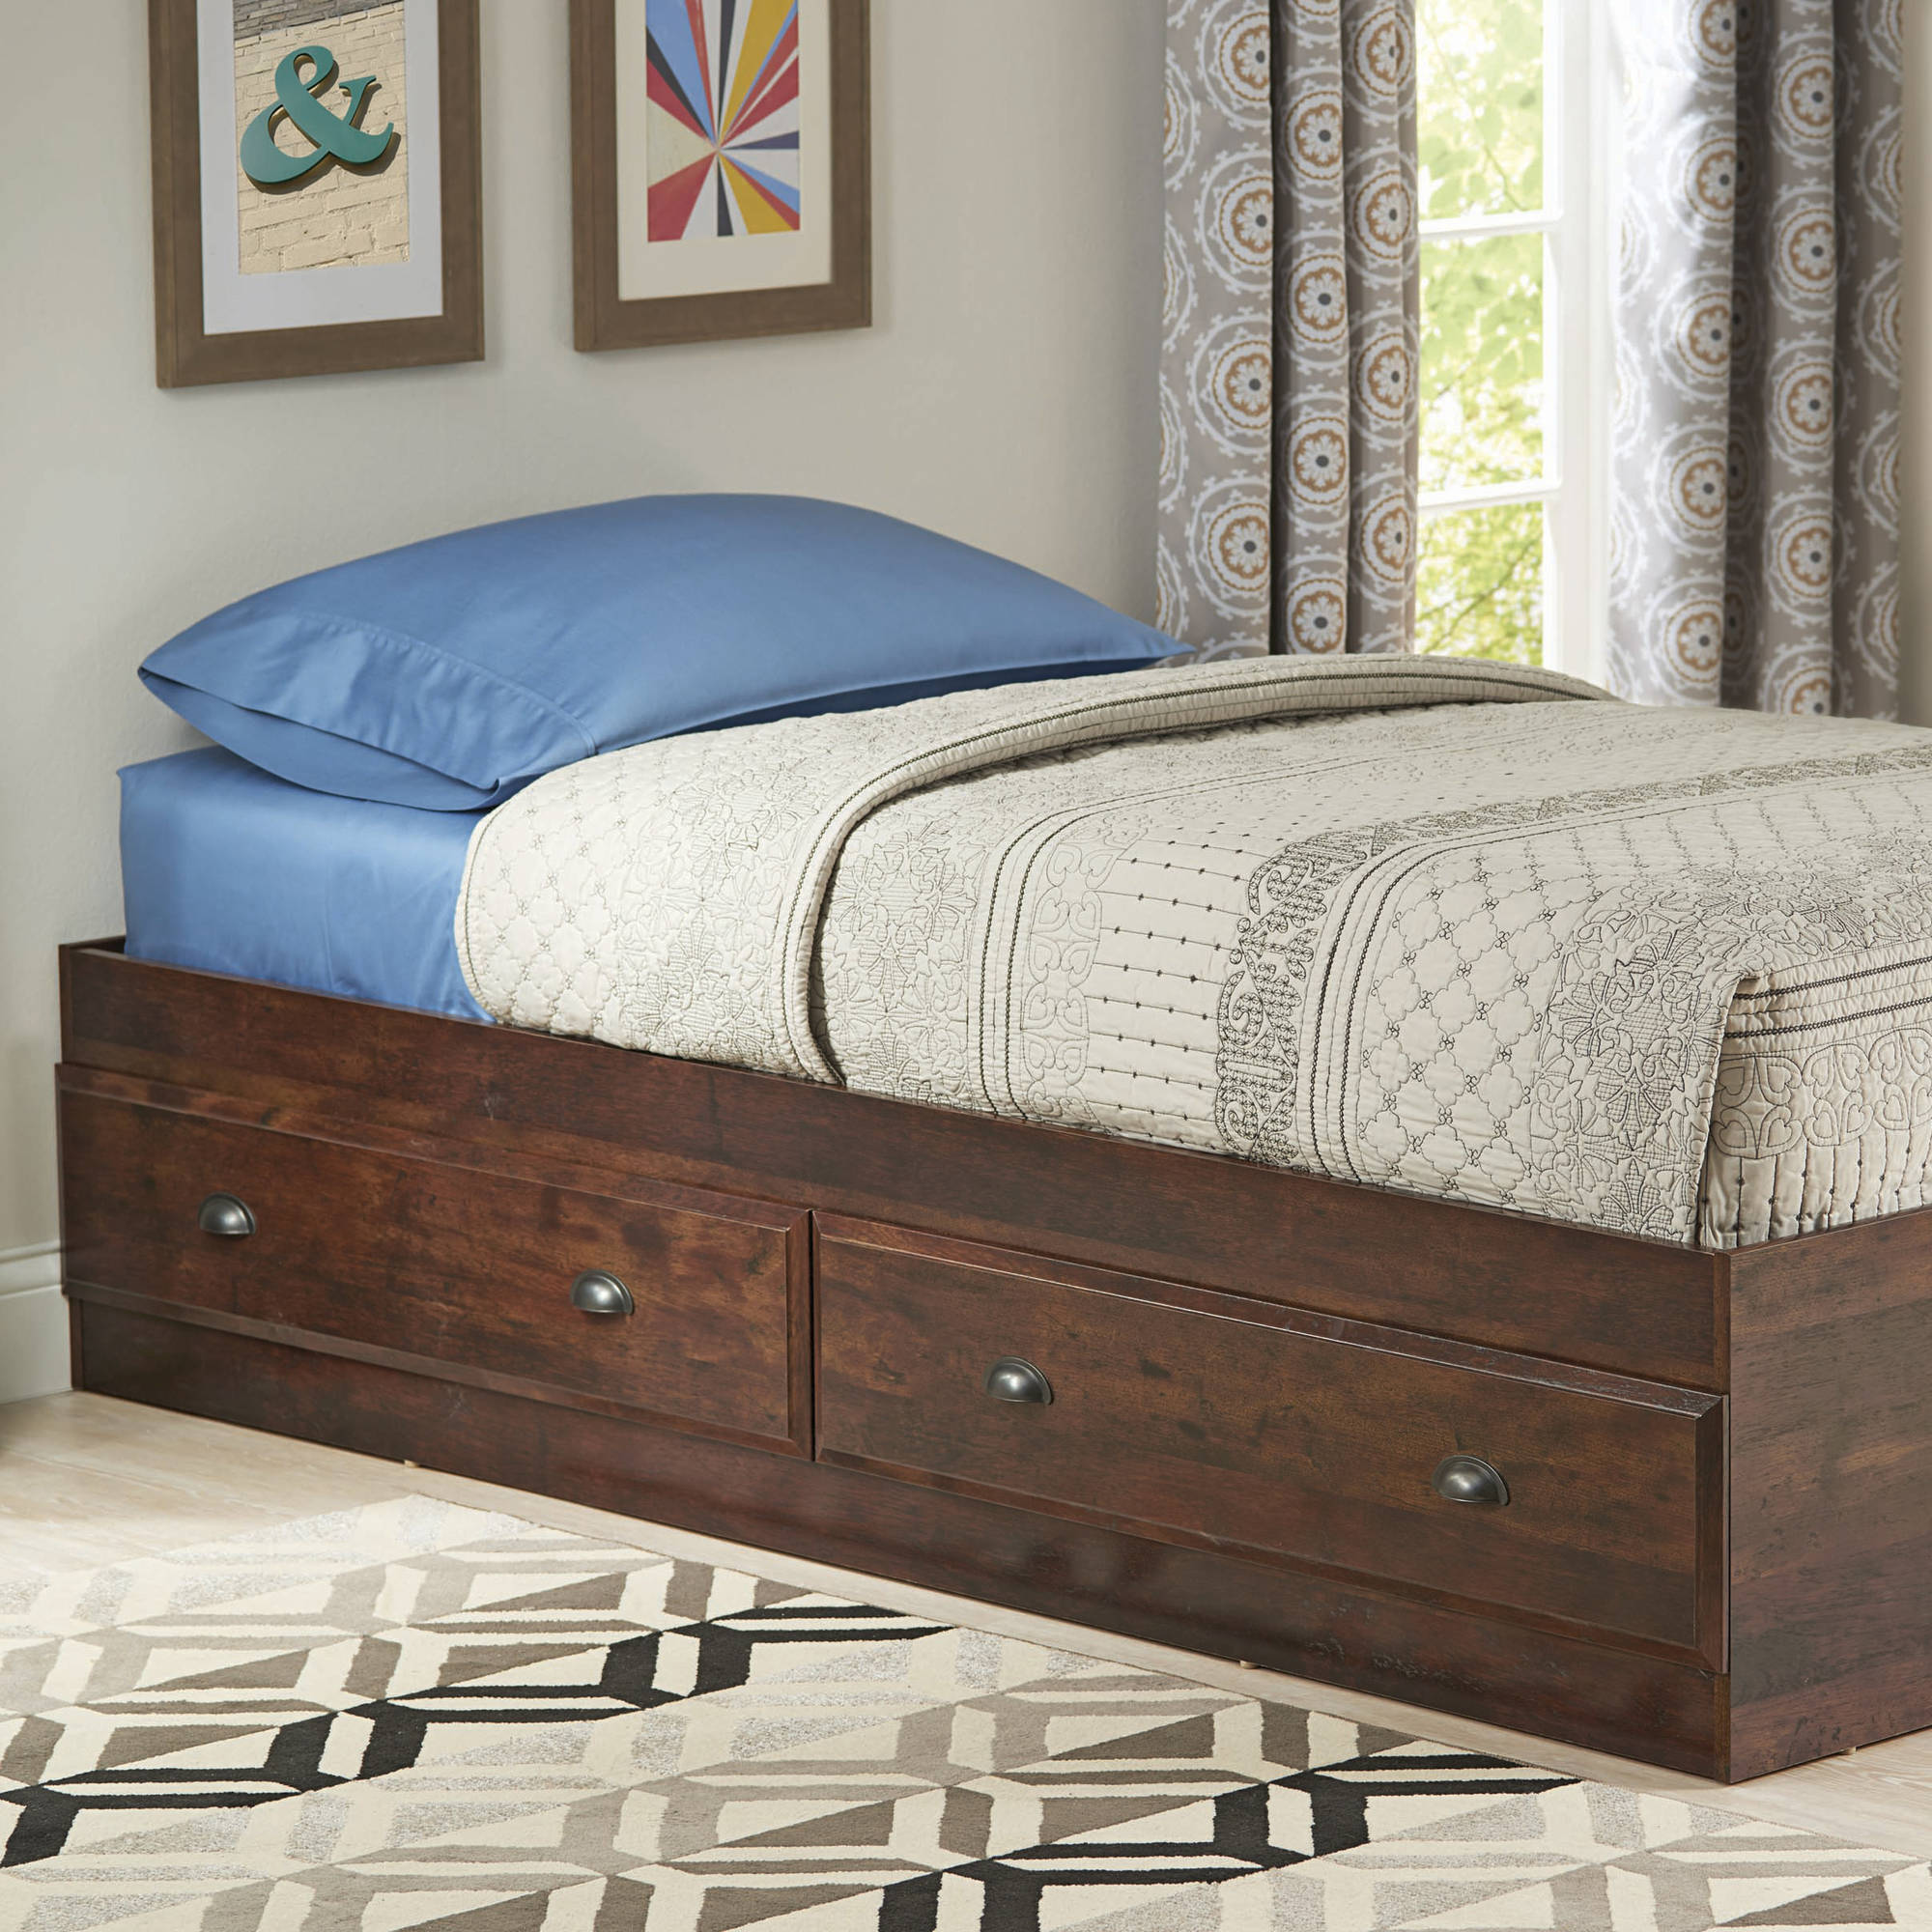 Better Homes & Gardens Leighton Mates Bed, Rustic Cherry Finish